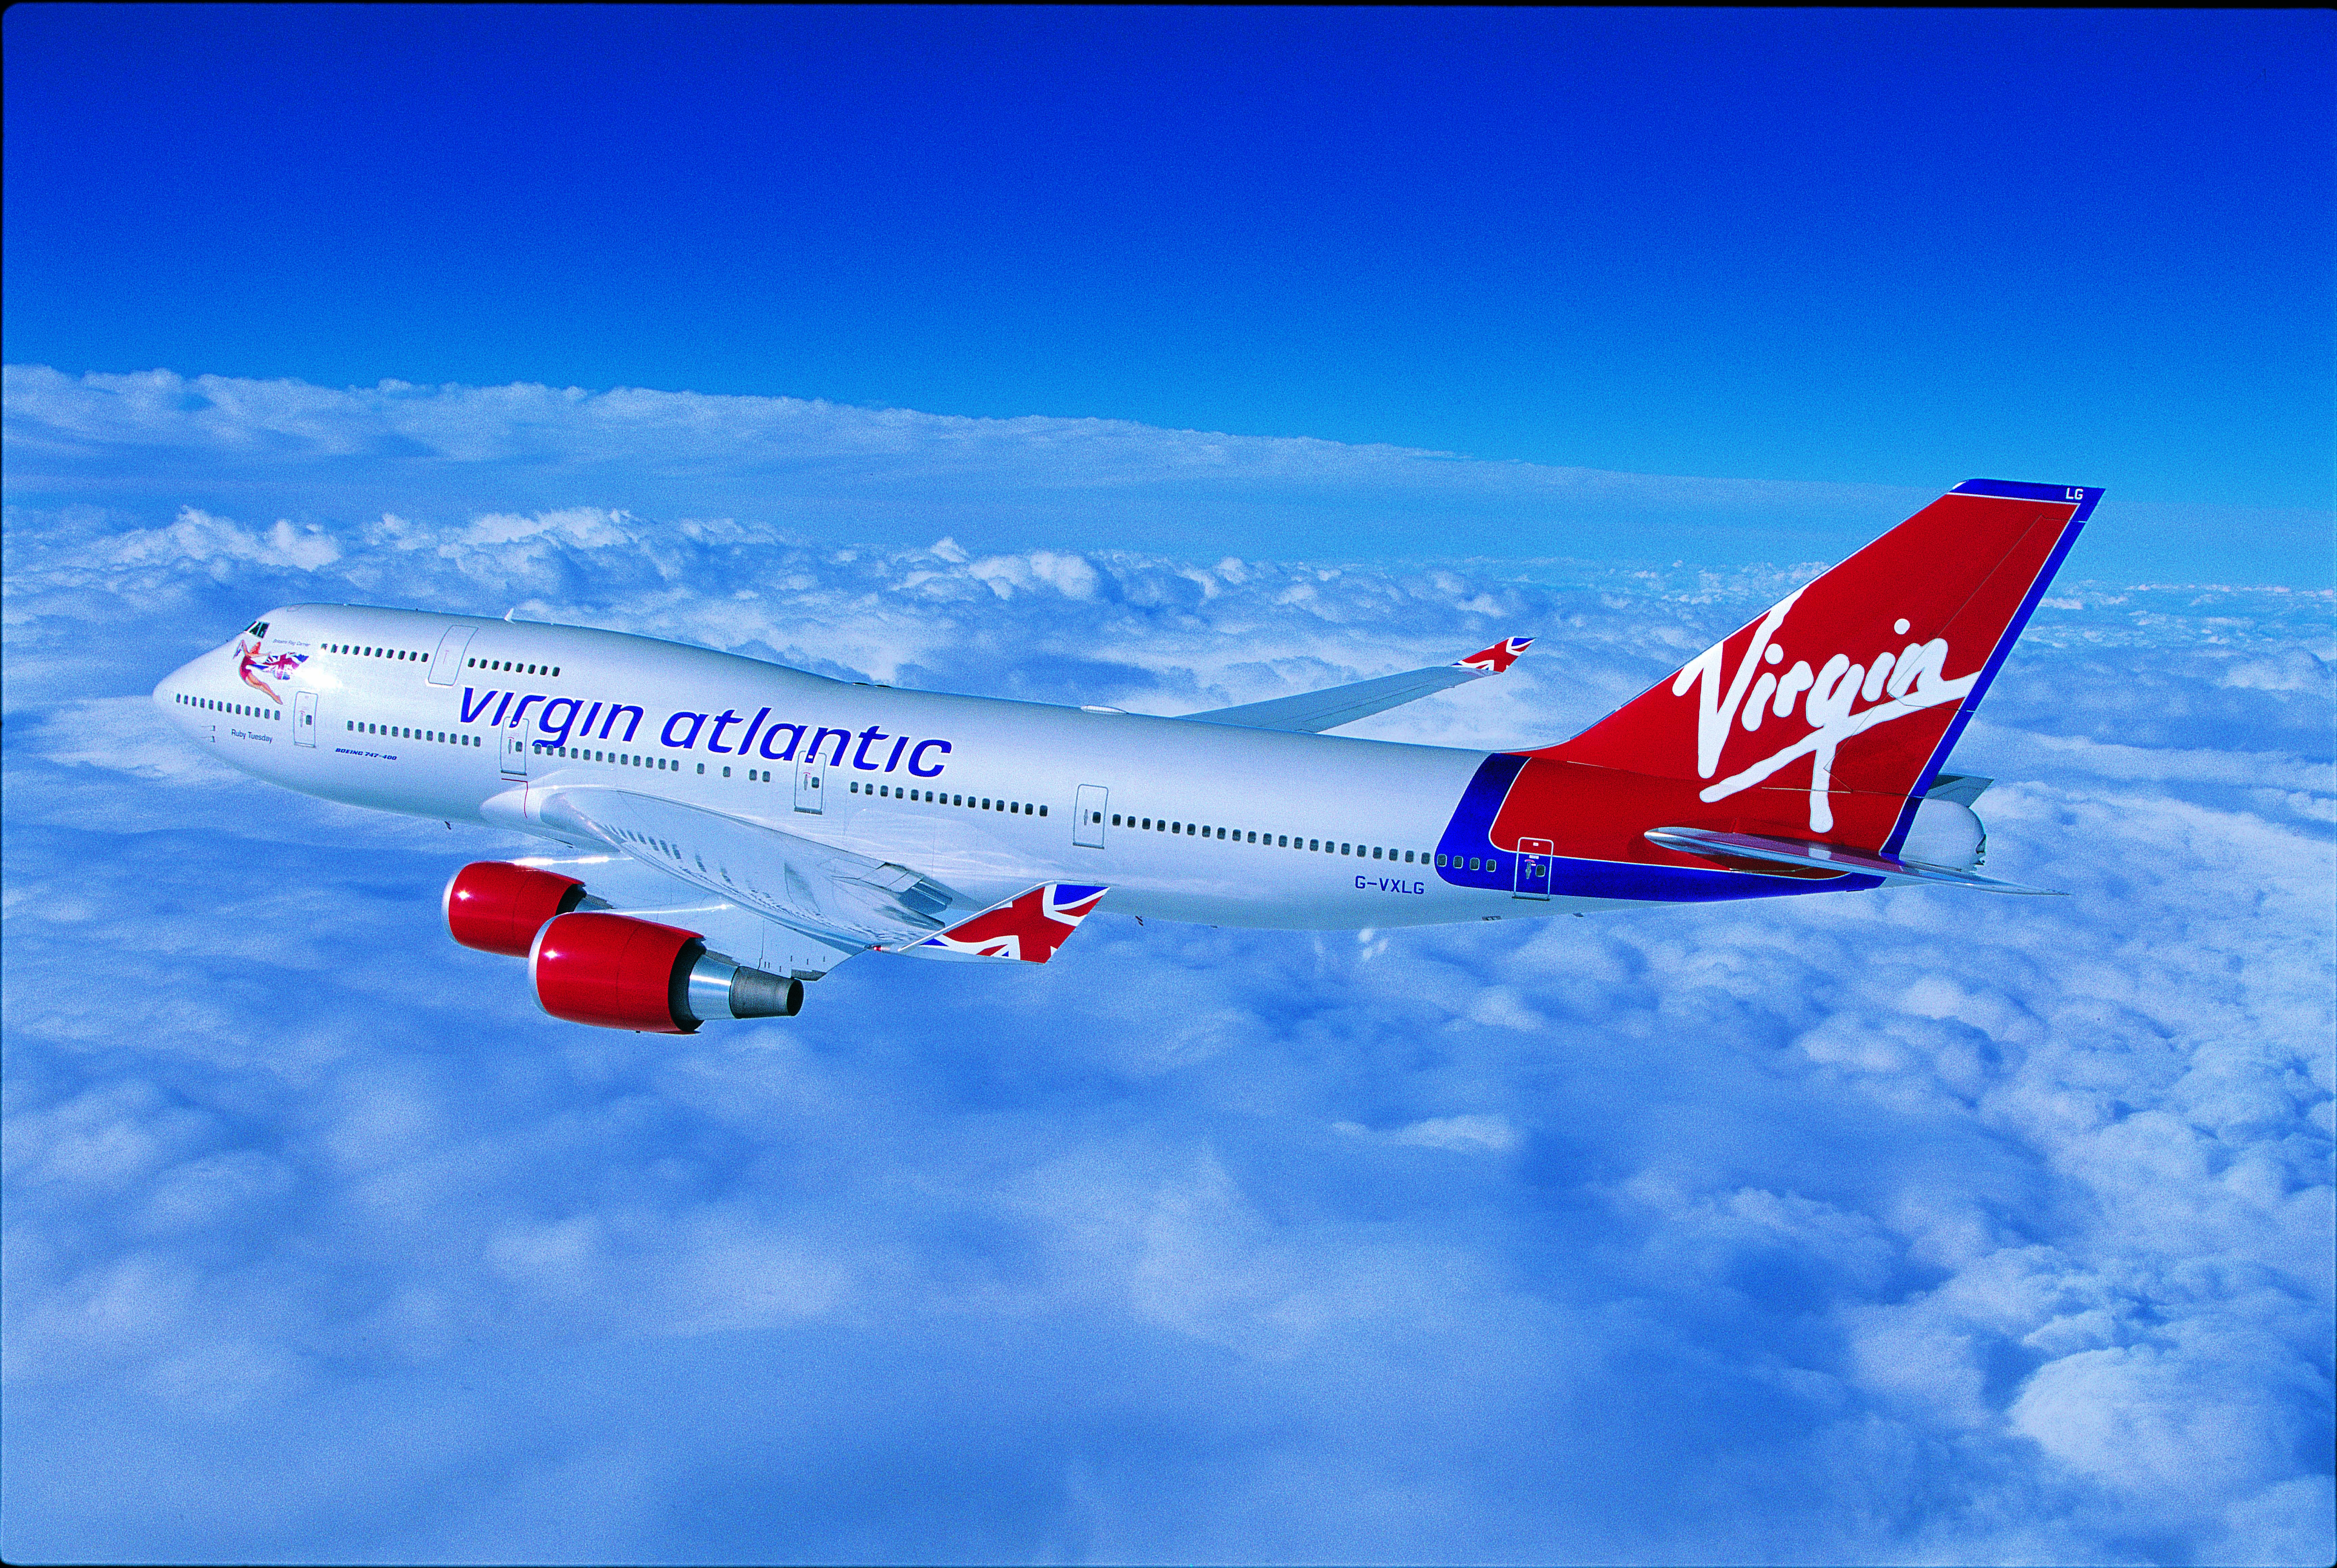 Virgin Atlantic Focus On Wellness with Specsavers